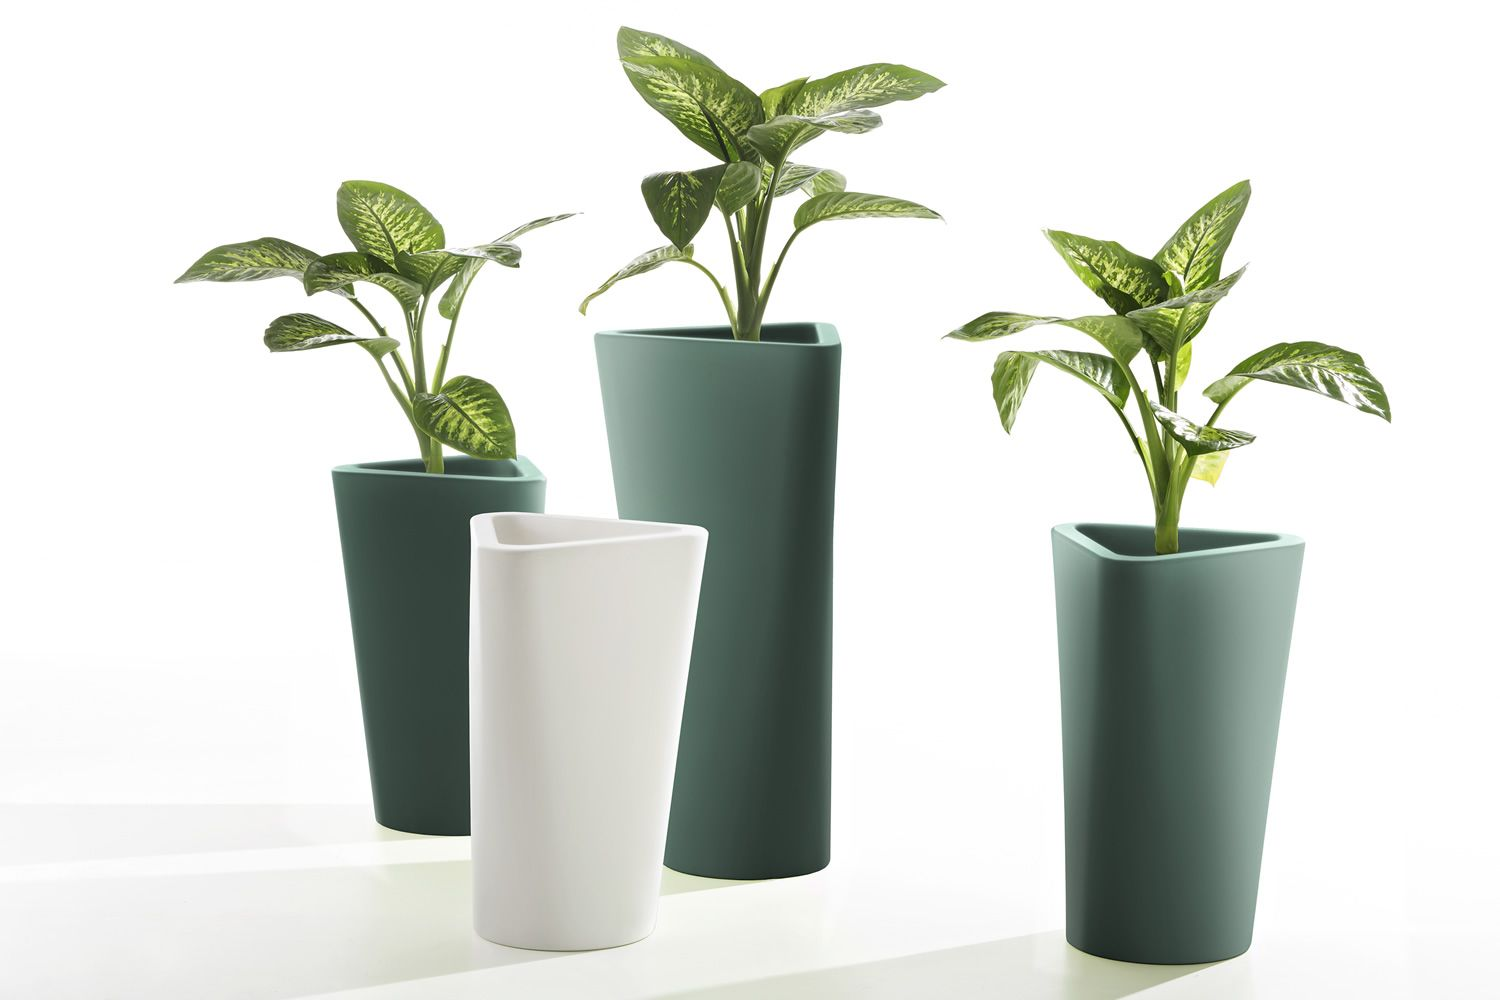 Garden vase in polyethylene, low (71 cm) and tall (101 cm)